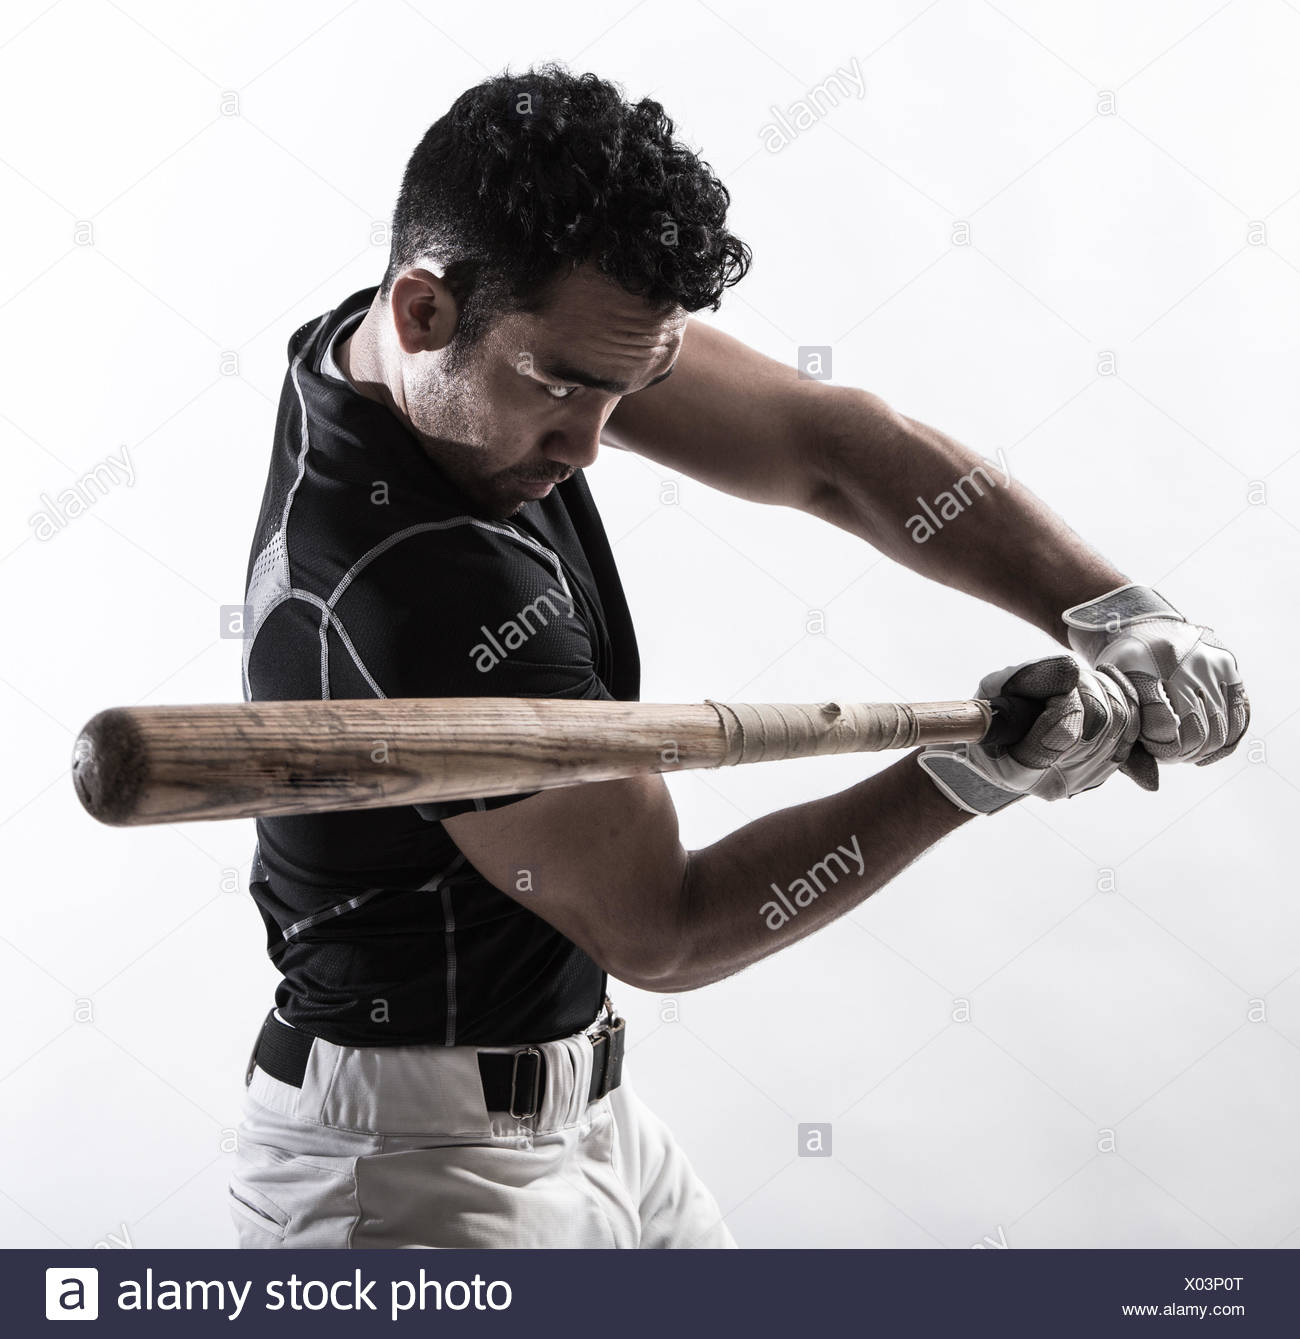 Portrait of a man holding a baseball bat - Stock Image